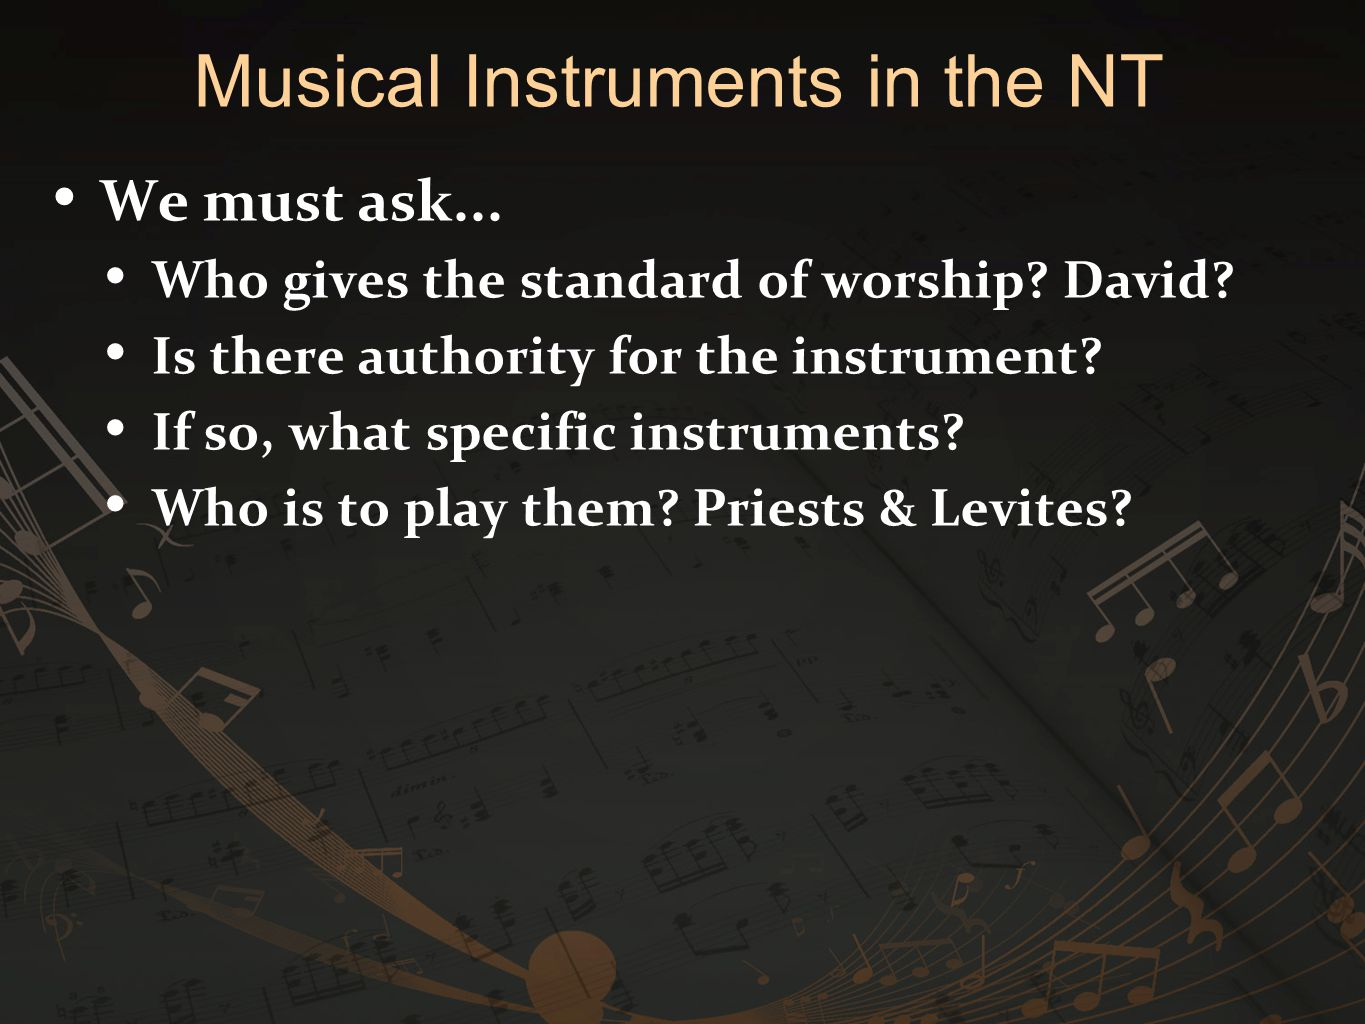 We must ask... Who gives the standard of worship? David? Is there authority for the instrument? If so, what specific instruments? Who is to play them?